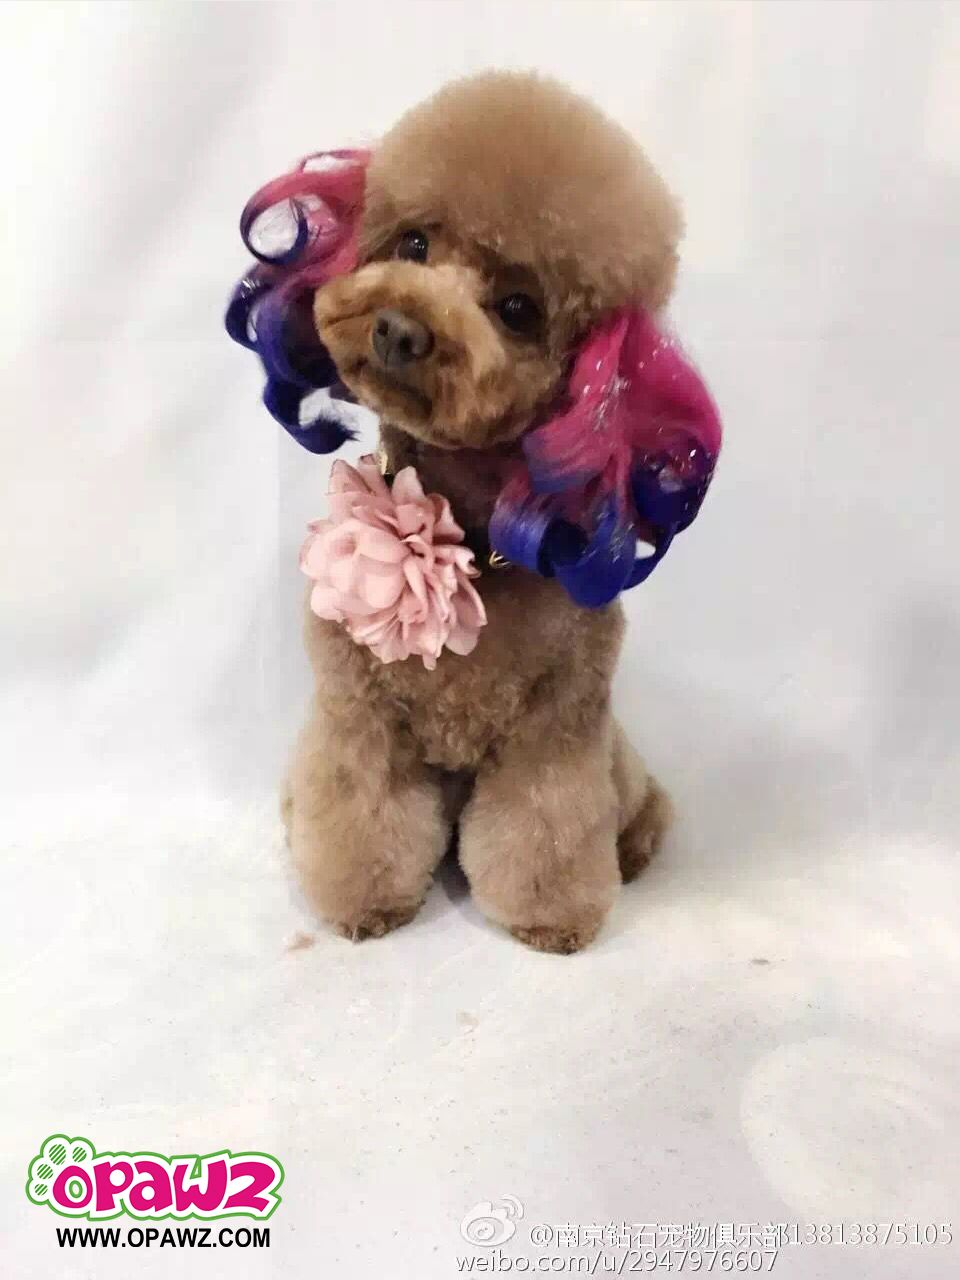 Opawz Pet Fashion Provides The Hottest Dog Accessories Including